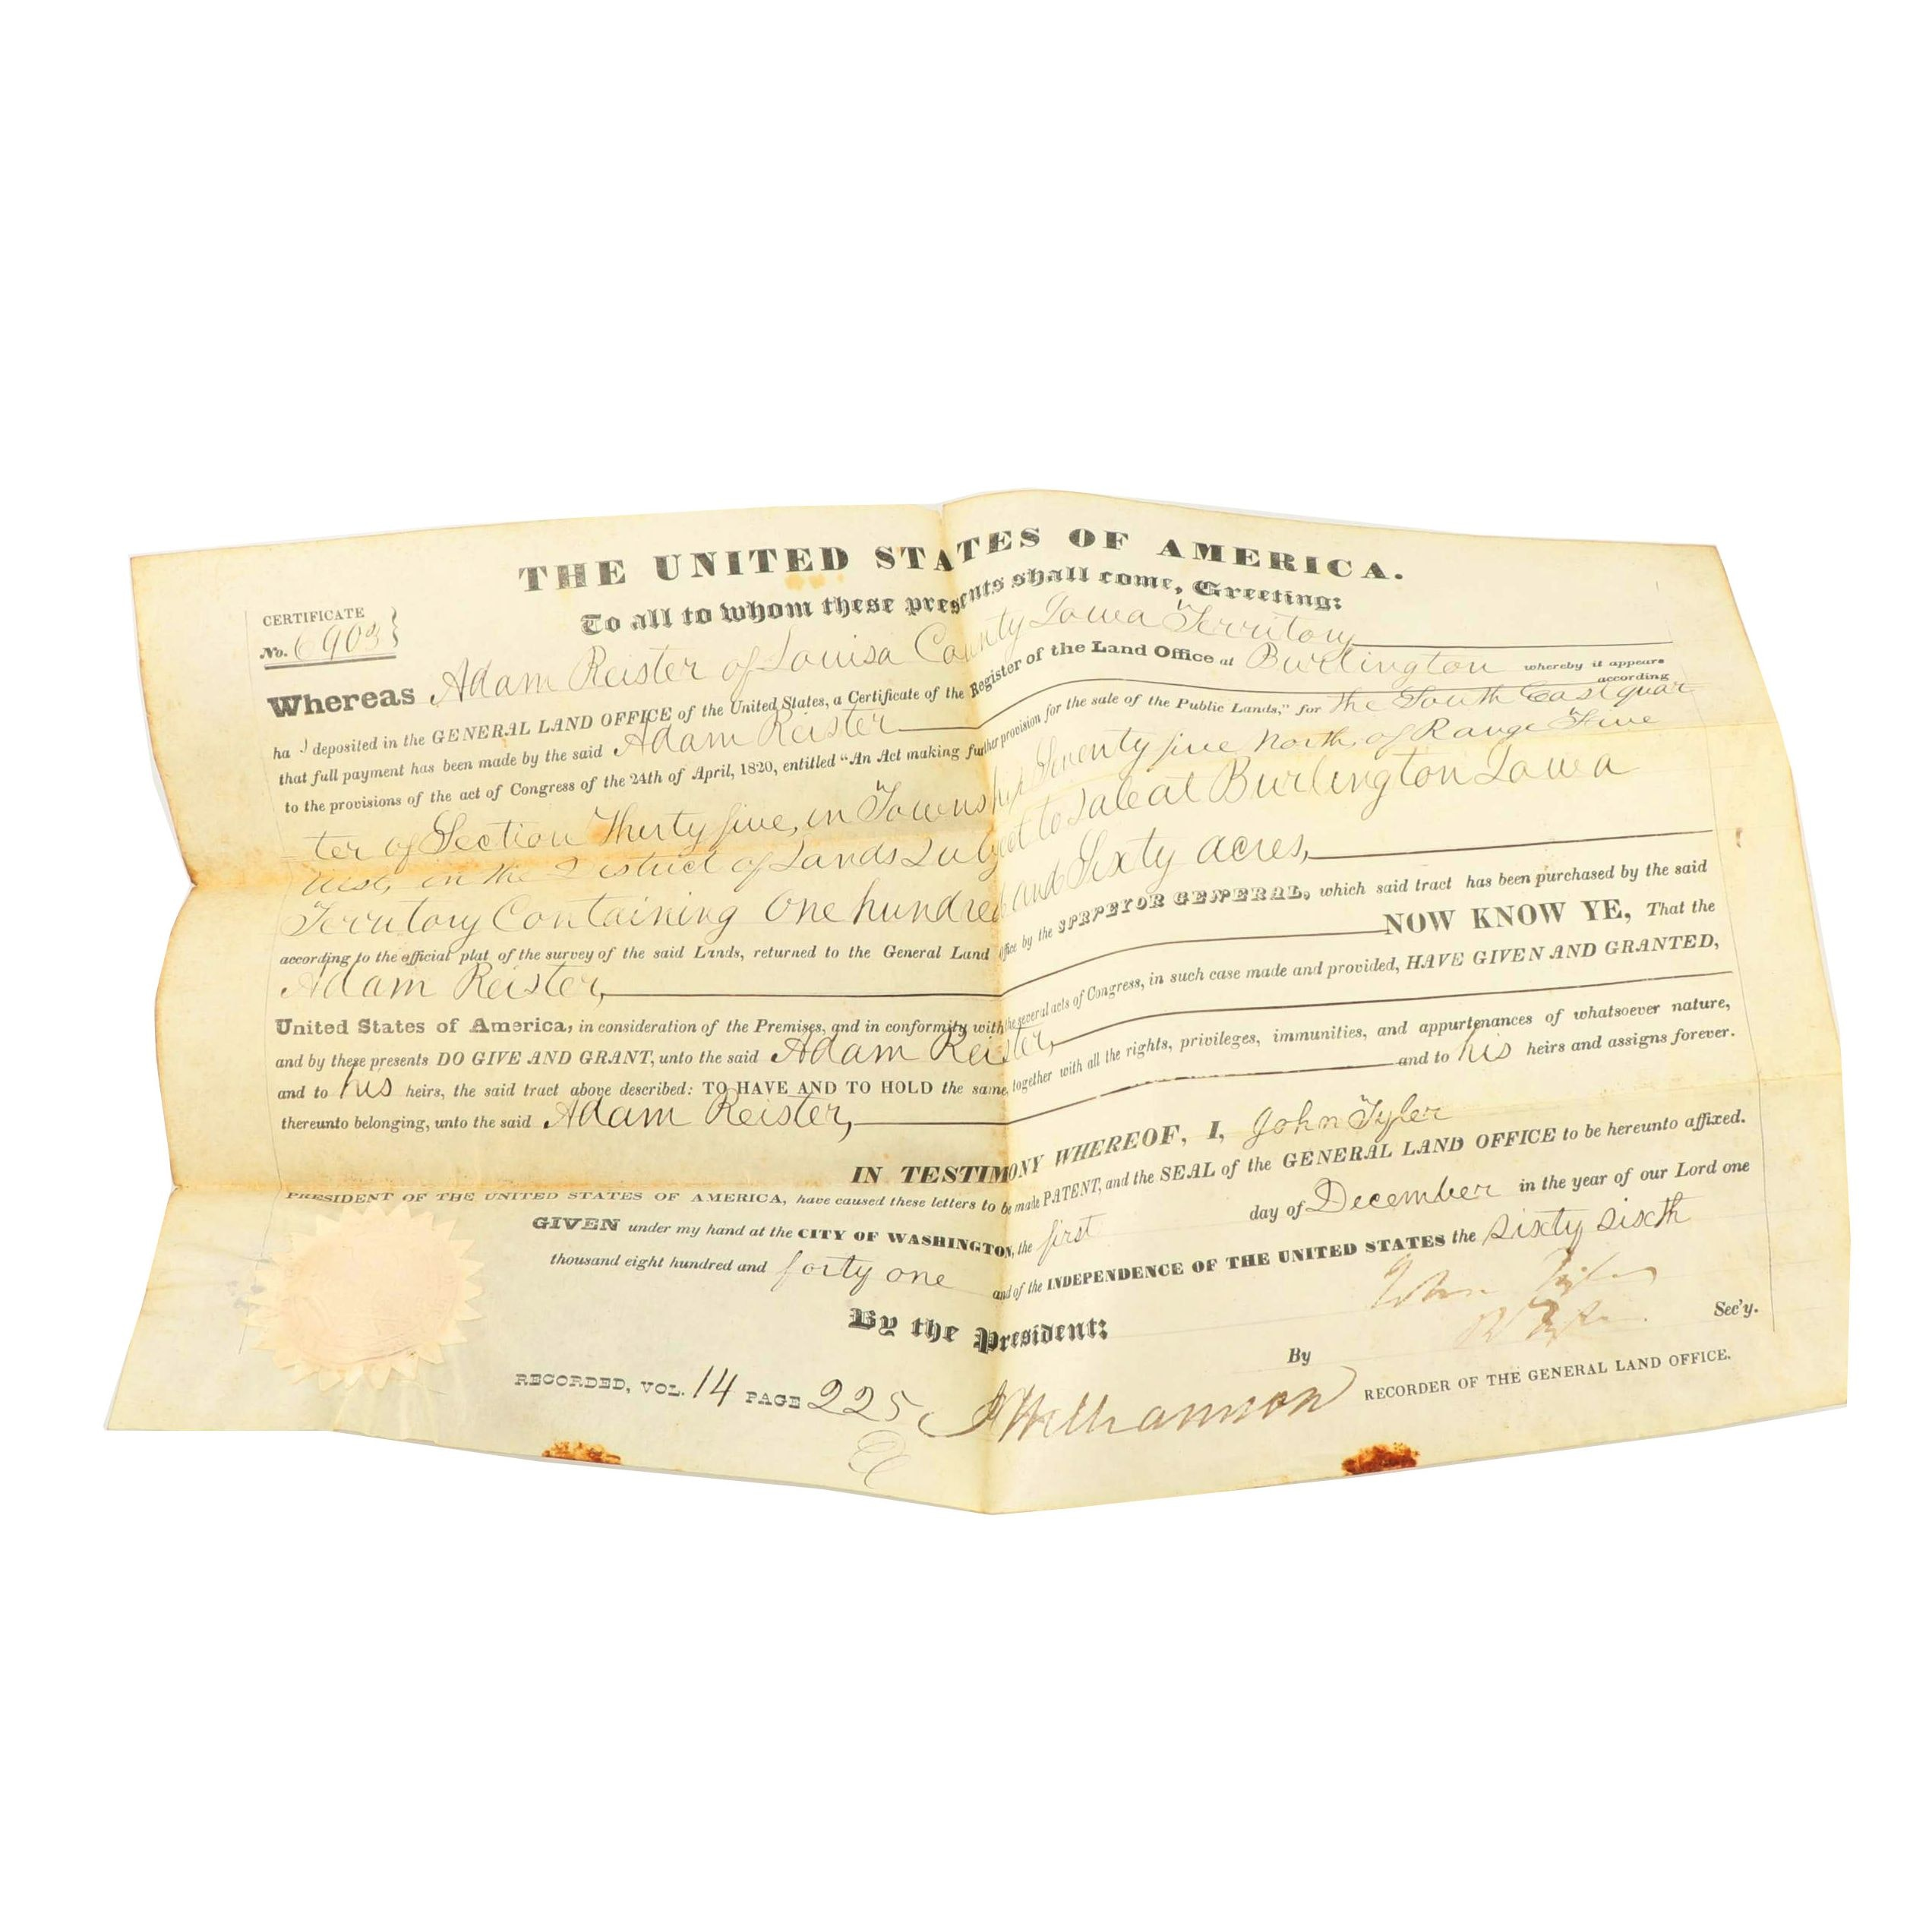 Archive of the Garner Family of Iowa, Land Grant dated 1841